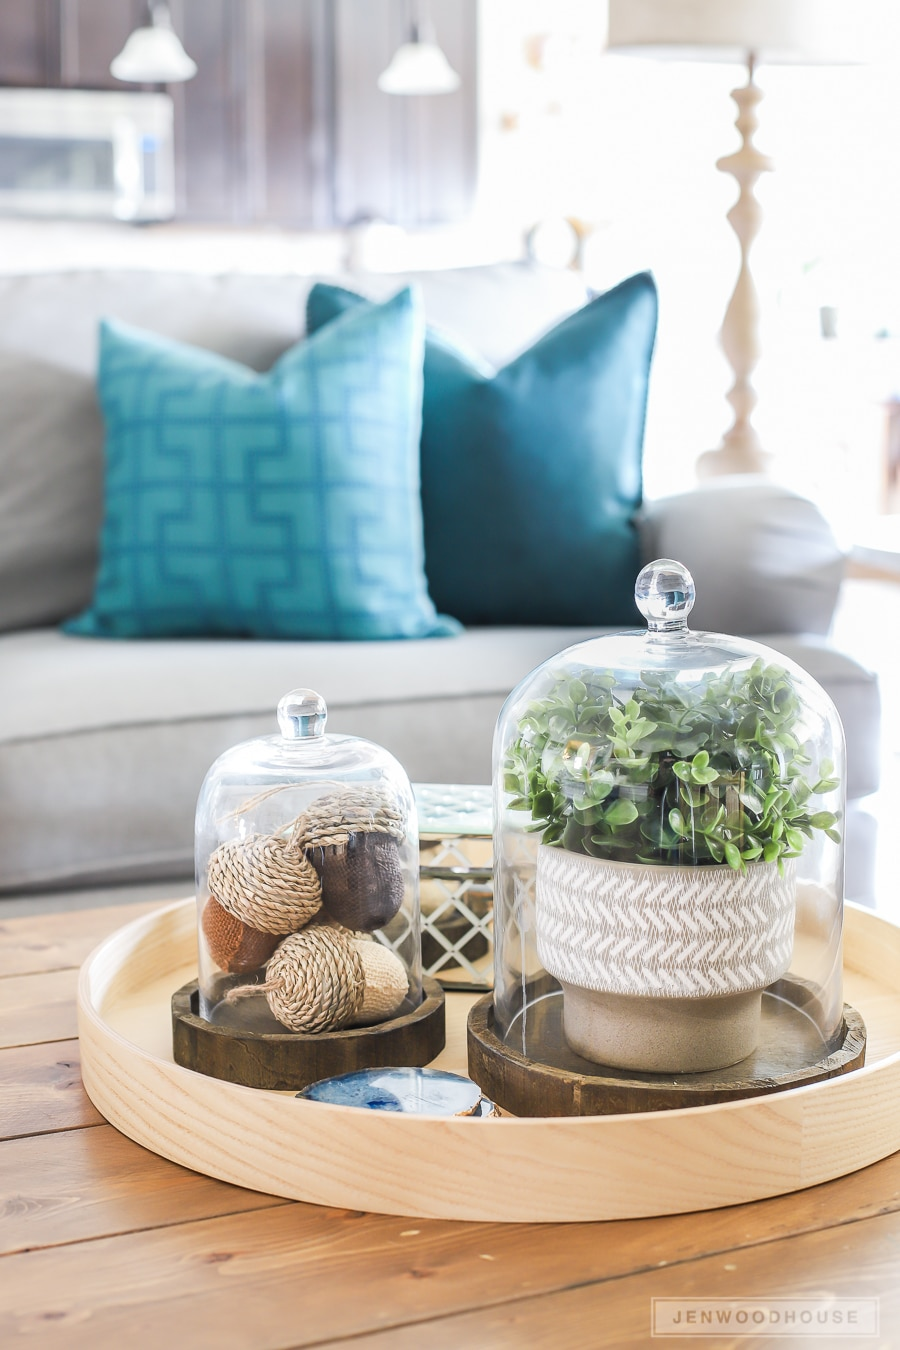 Add simple seasonal touches to your coffee table to decorate for Fall